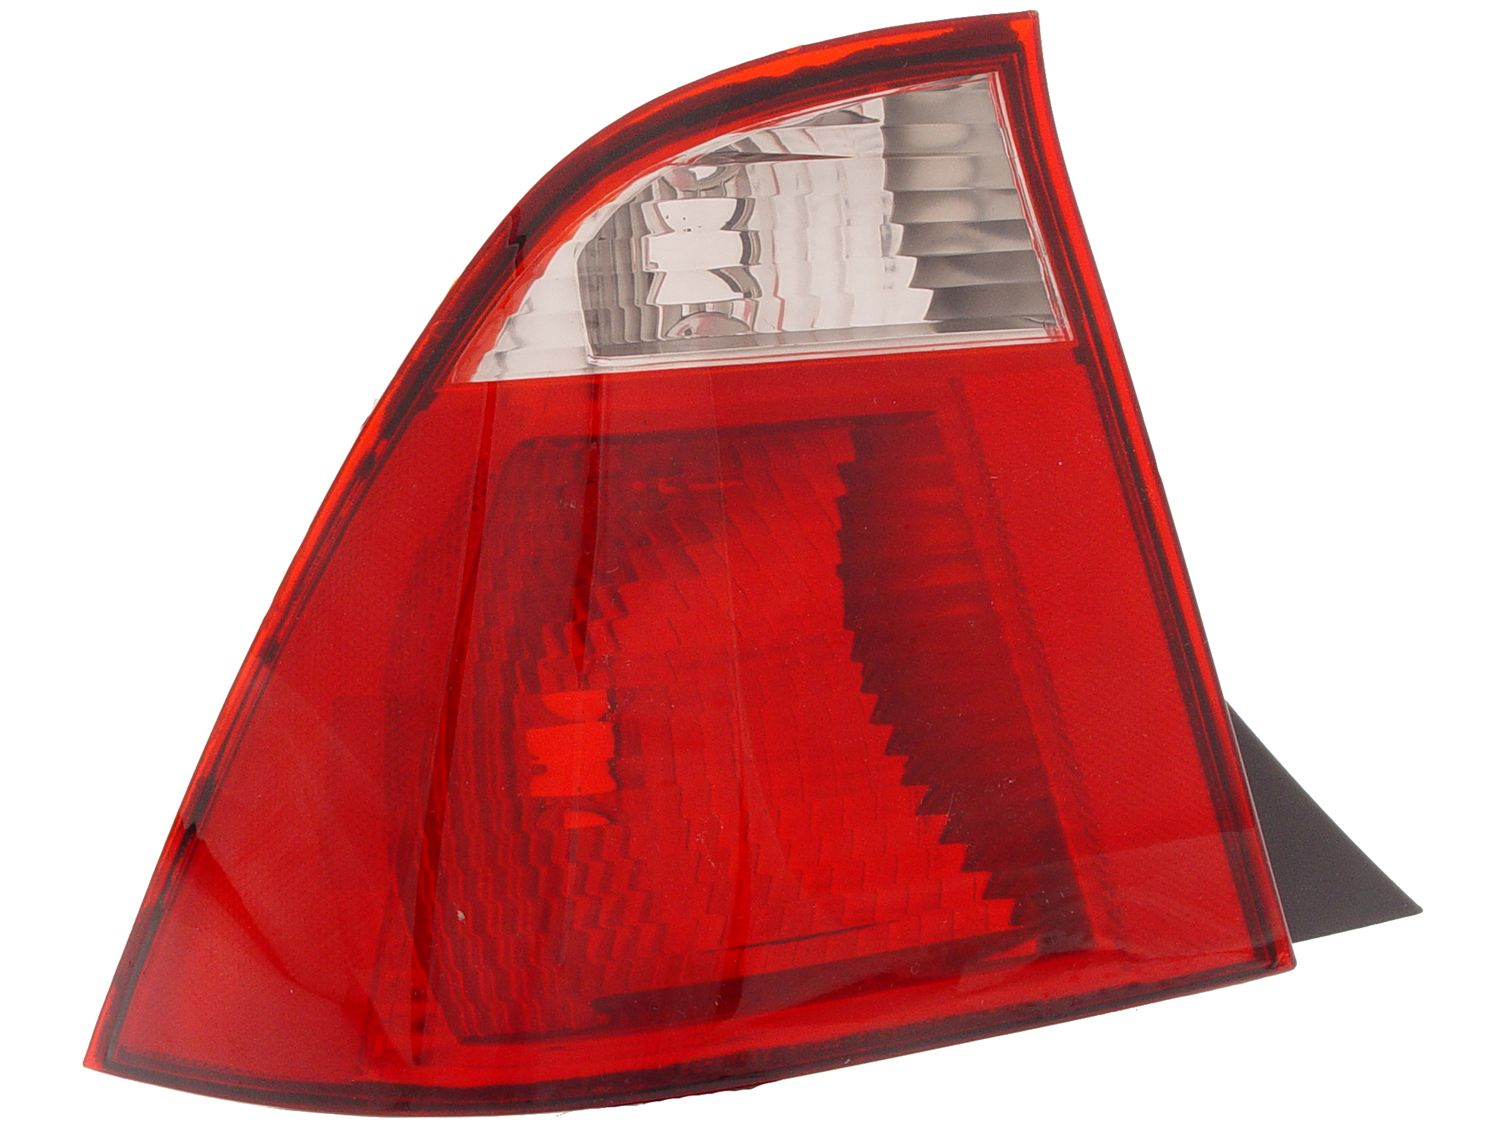 2006 Ford Focus Tail Light Embly Rb 1611190